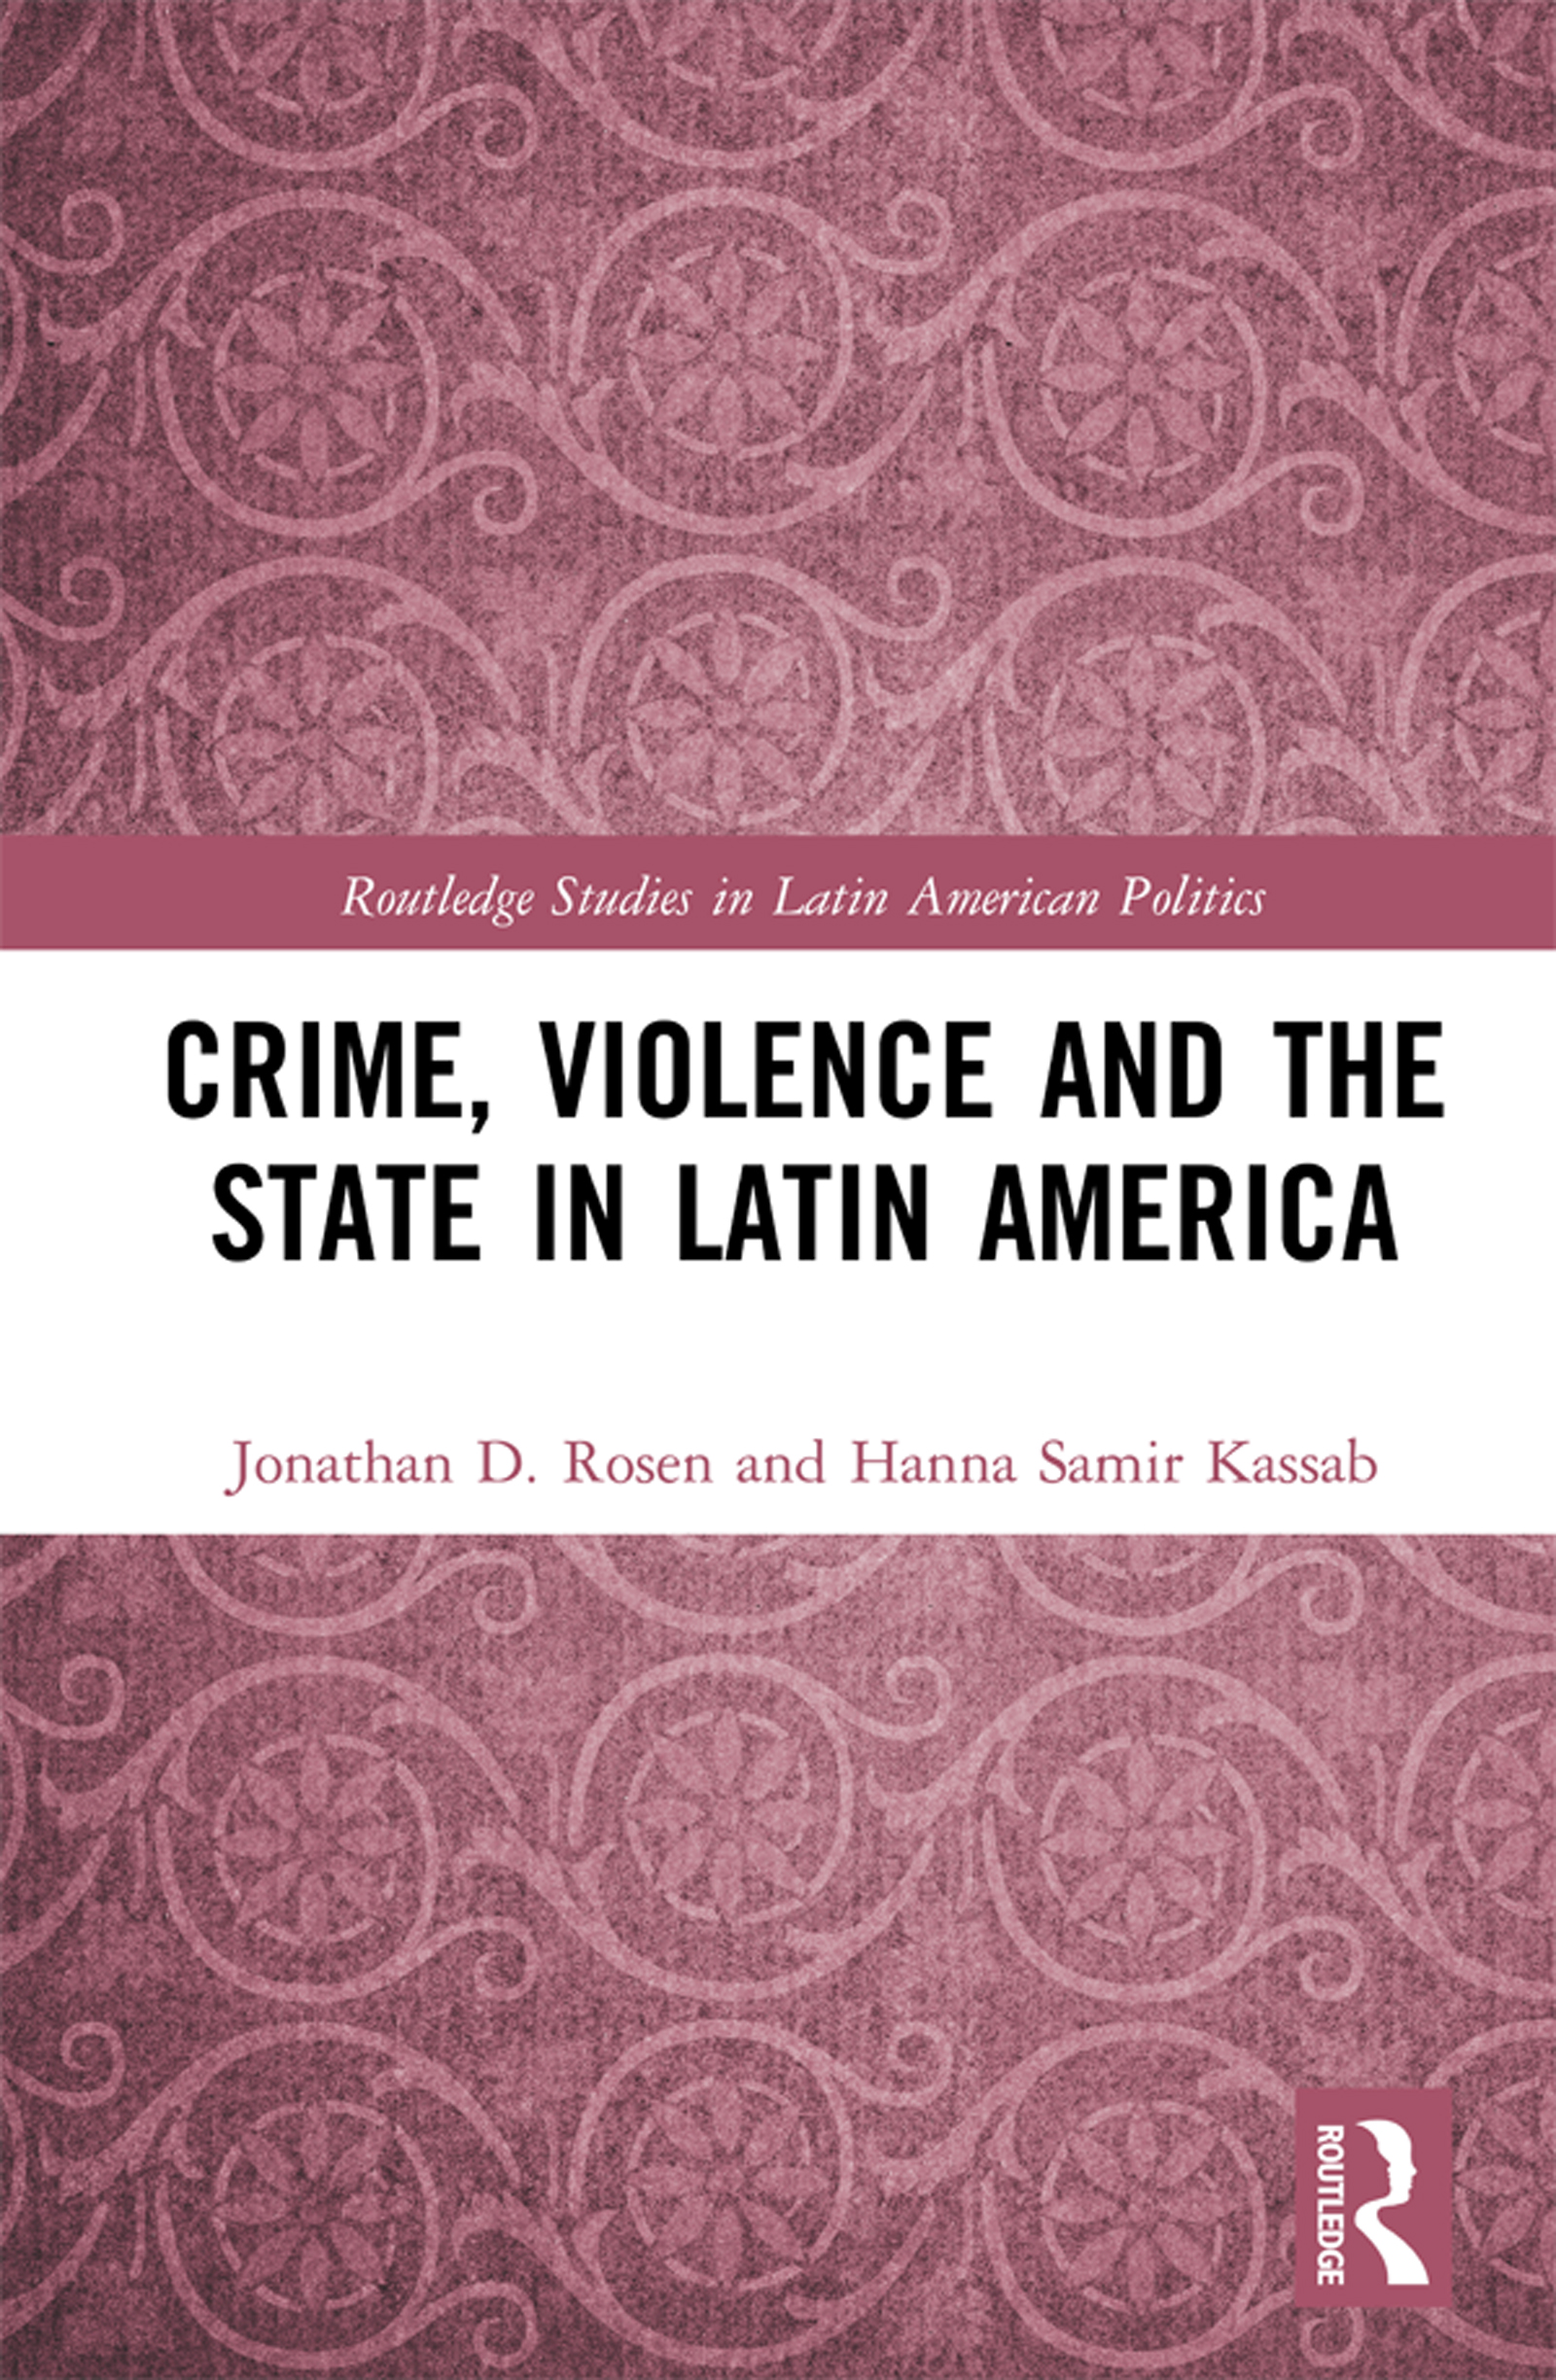 Crime, Violence and the State in Latin America